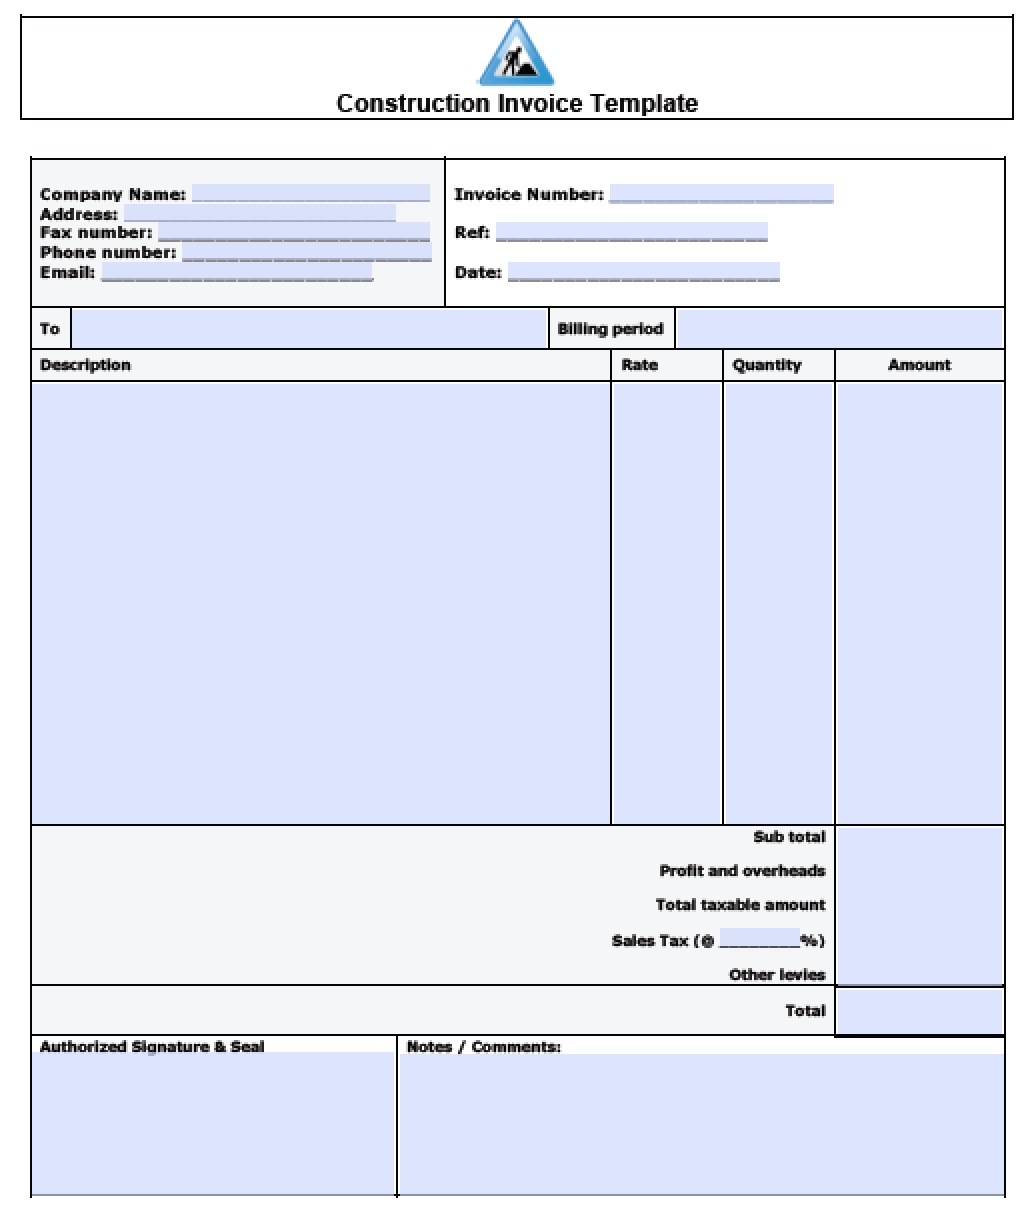 free construction invoice template excel pdf word doc